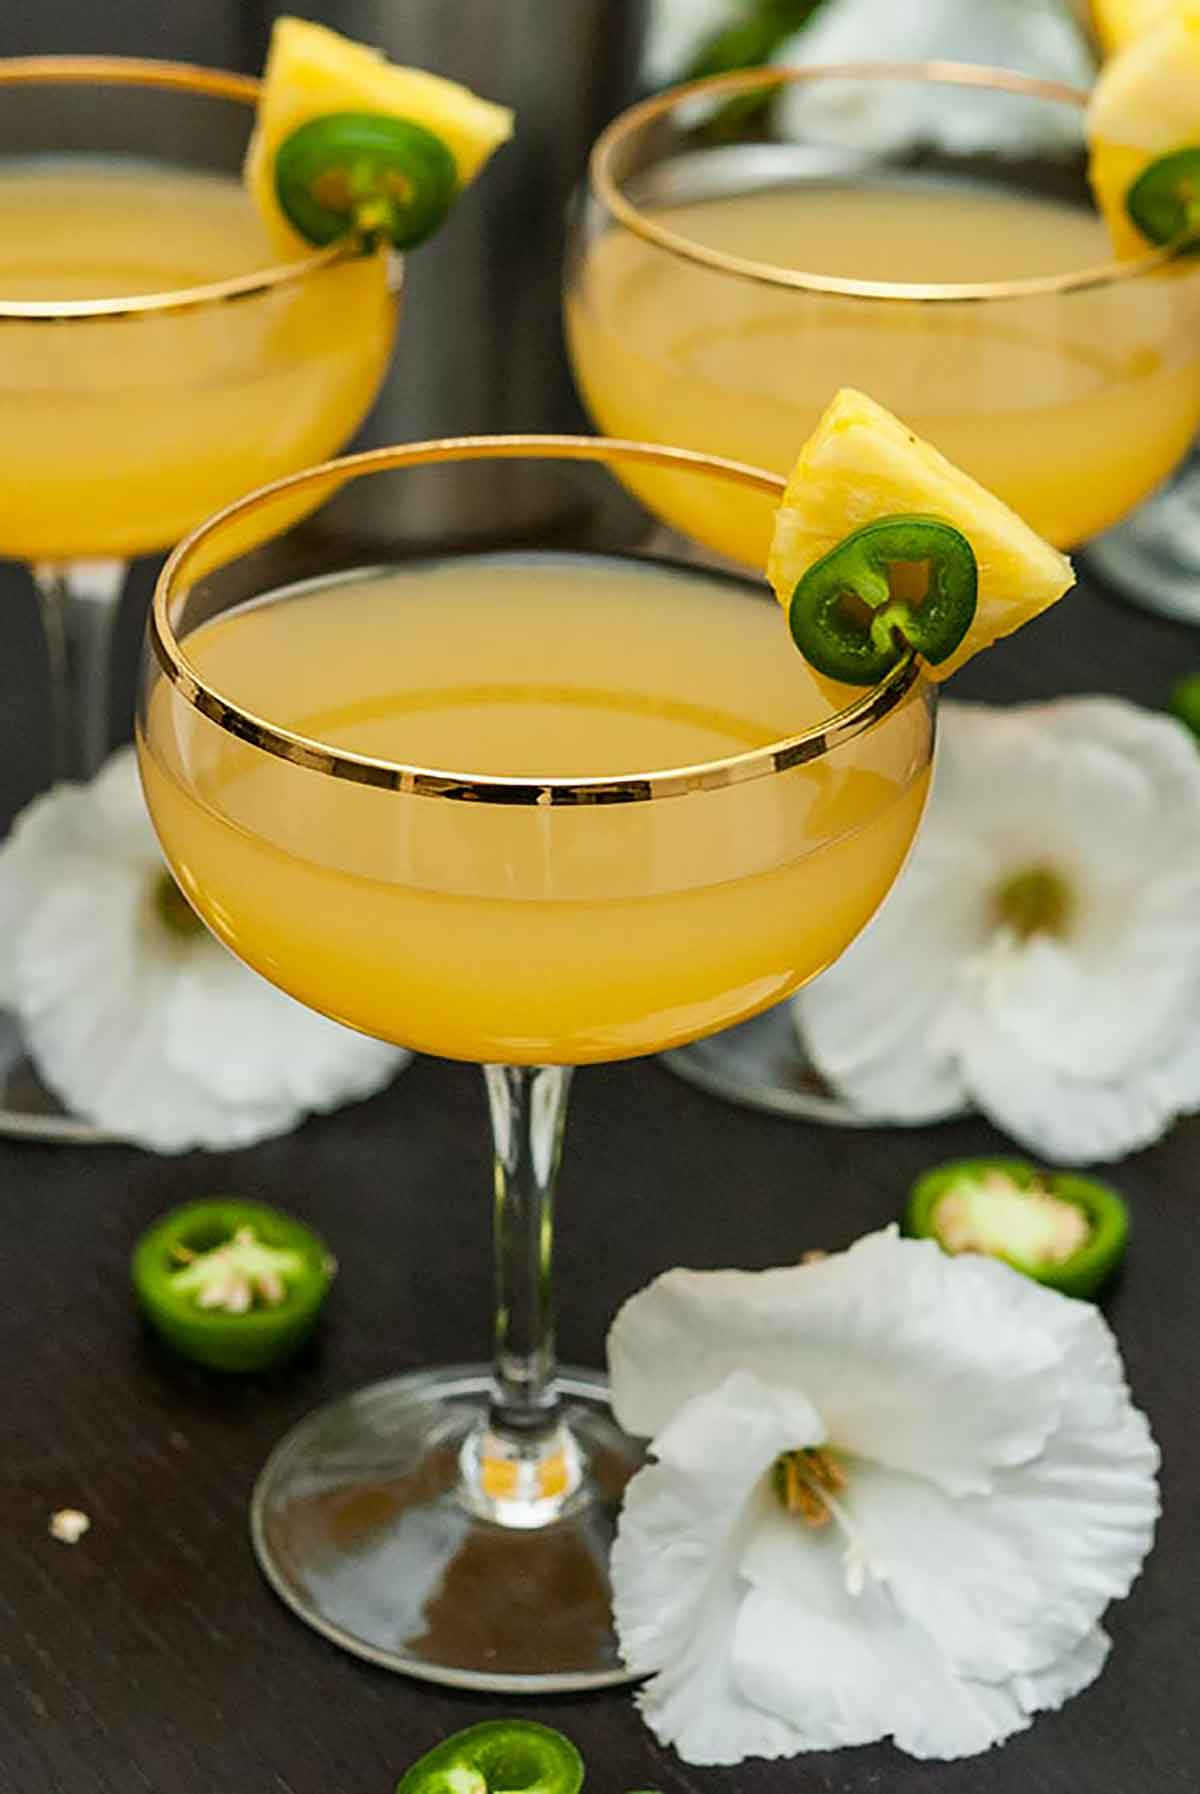 3 pineapple cocktails on a table, garnished with pineapple and jalapeños, surrounded by tropical flowers.